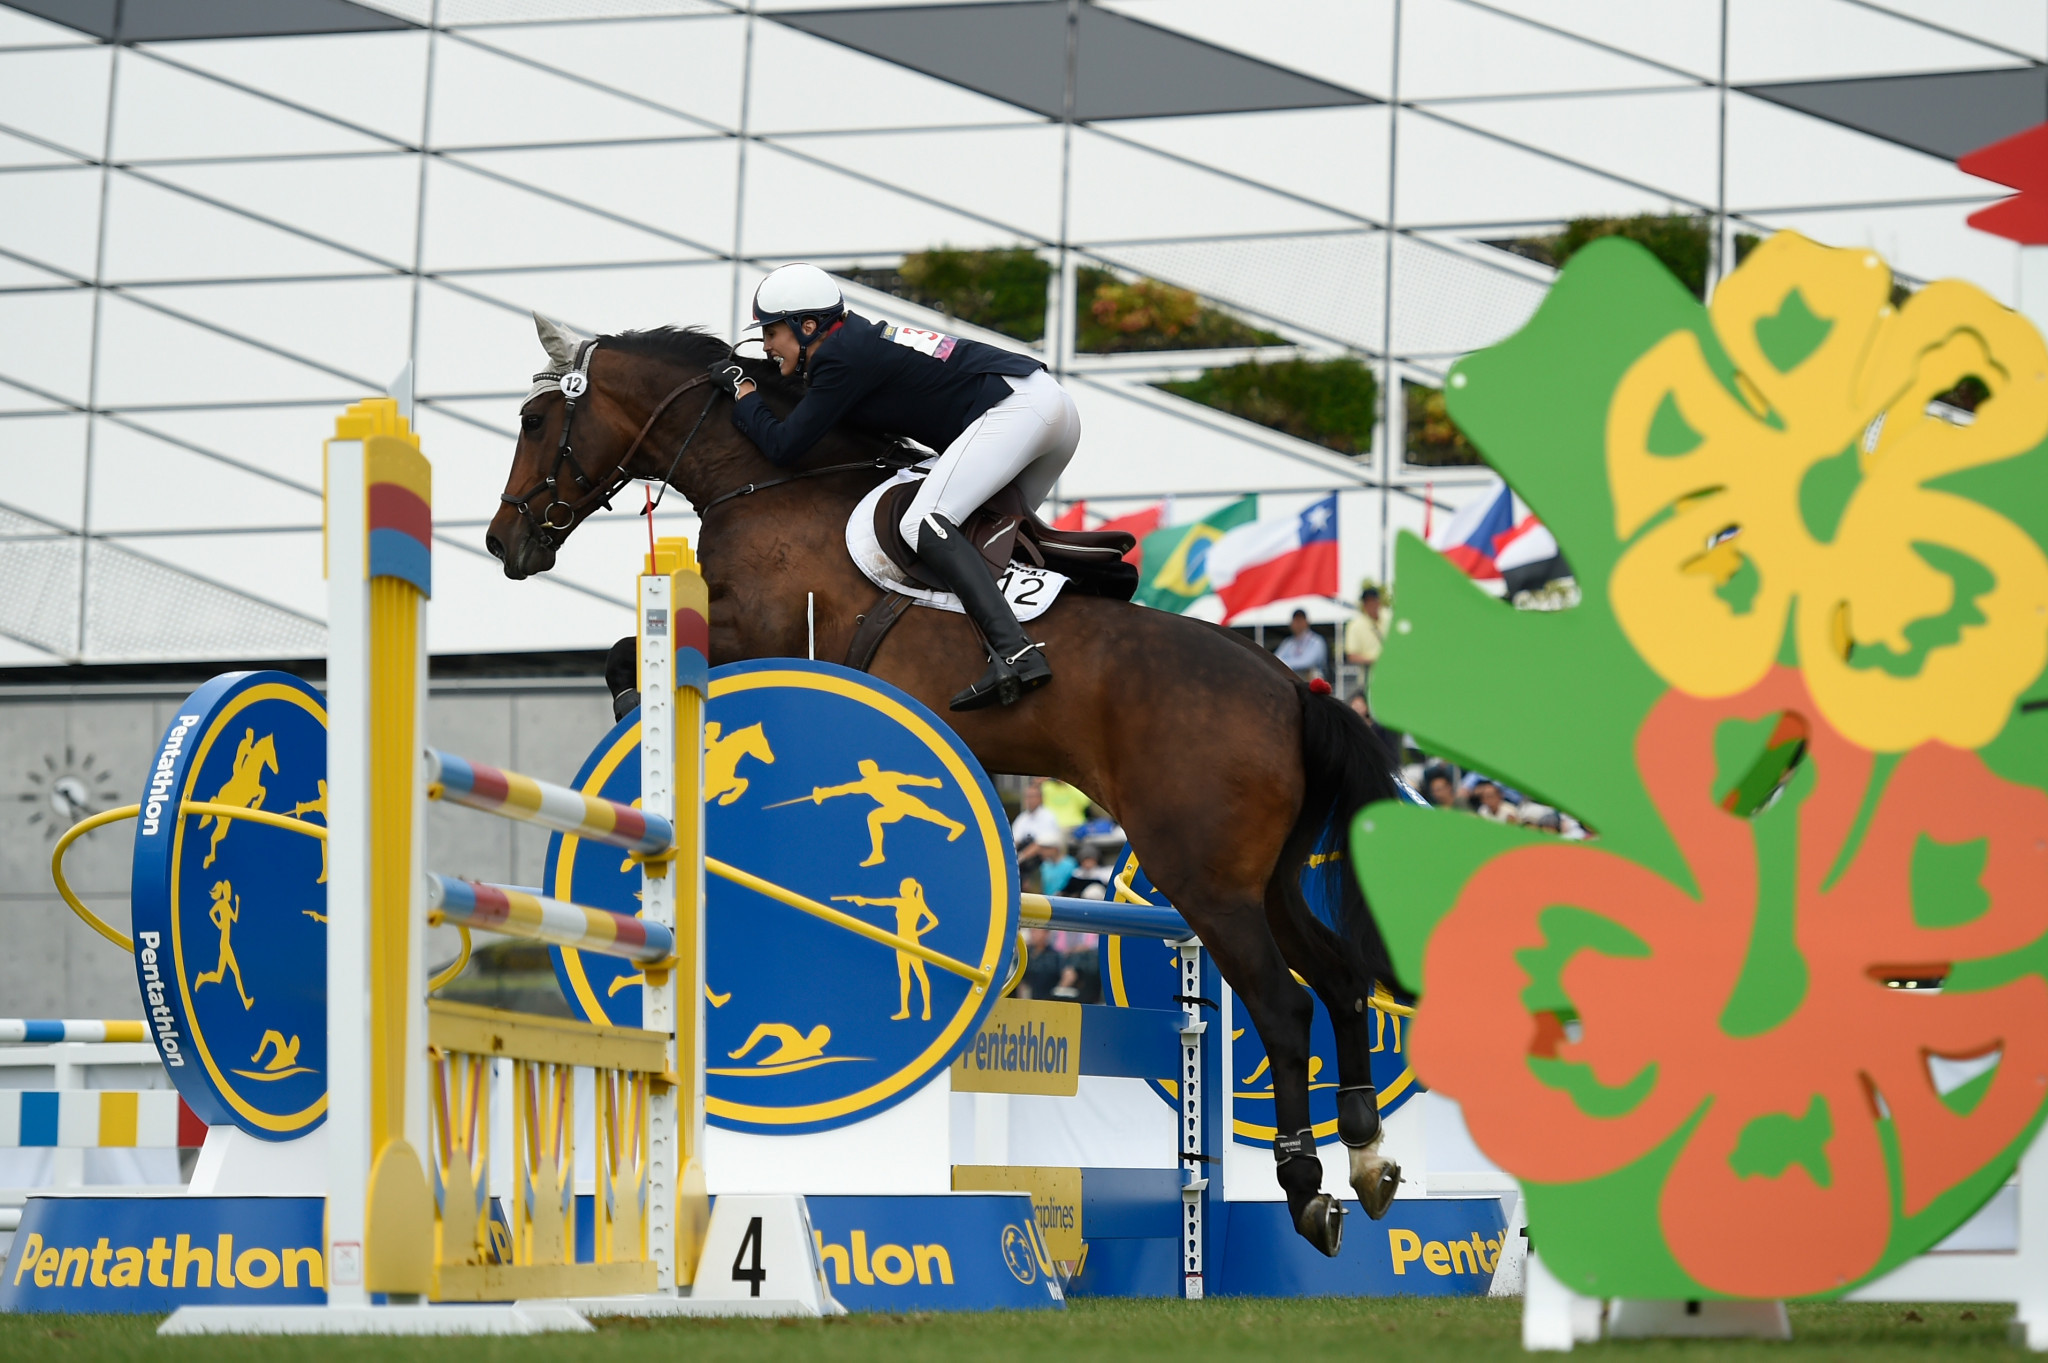 Pentathlon World Cup Final moved from South Korea to Hungary over COVID-19 quarantine policy